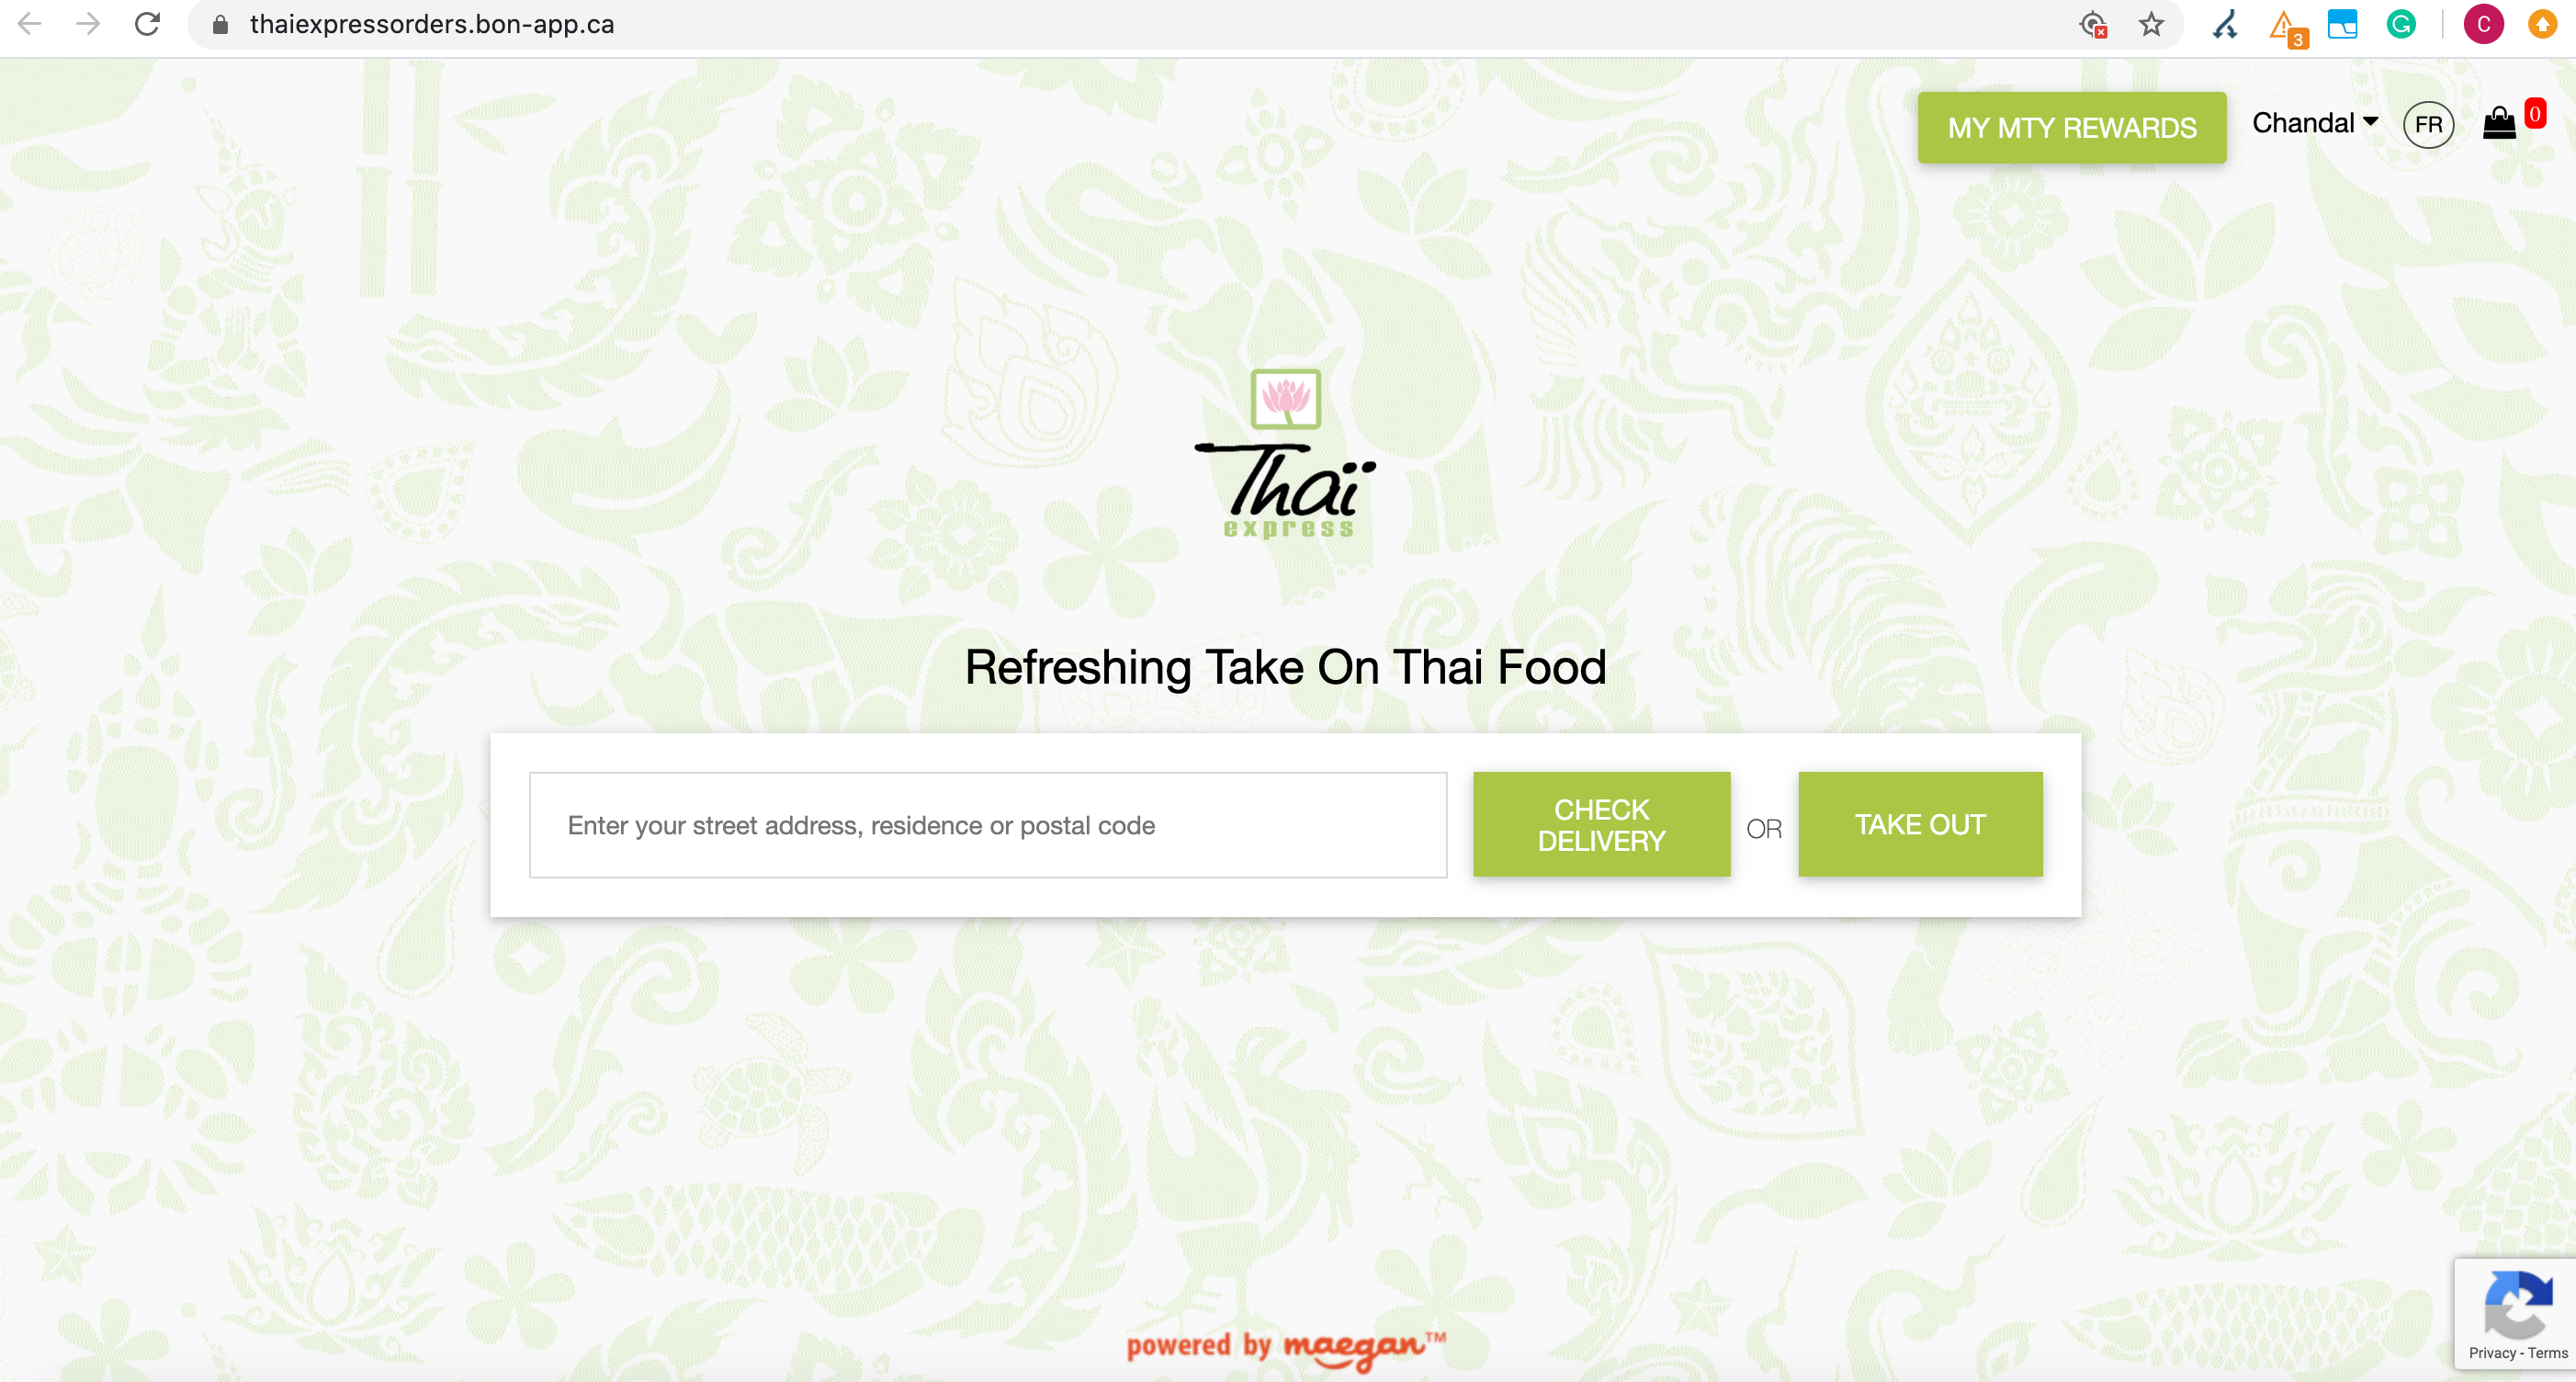 Thai Express ordering platform on third party subdomain